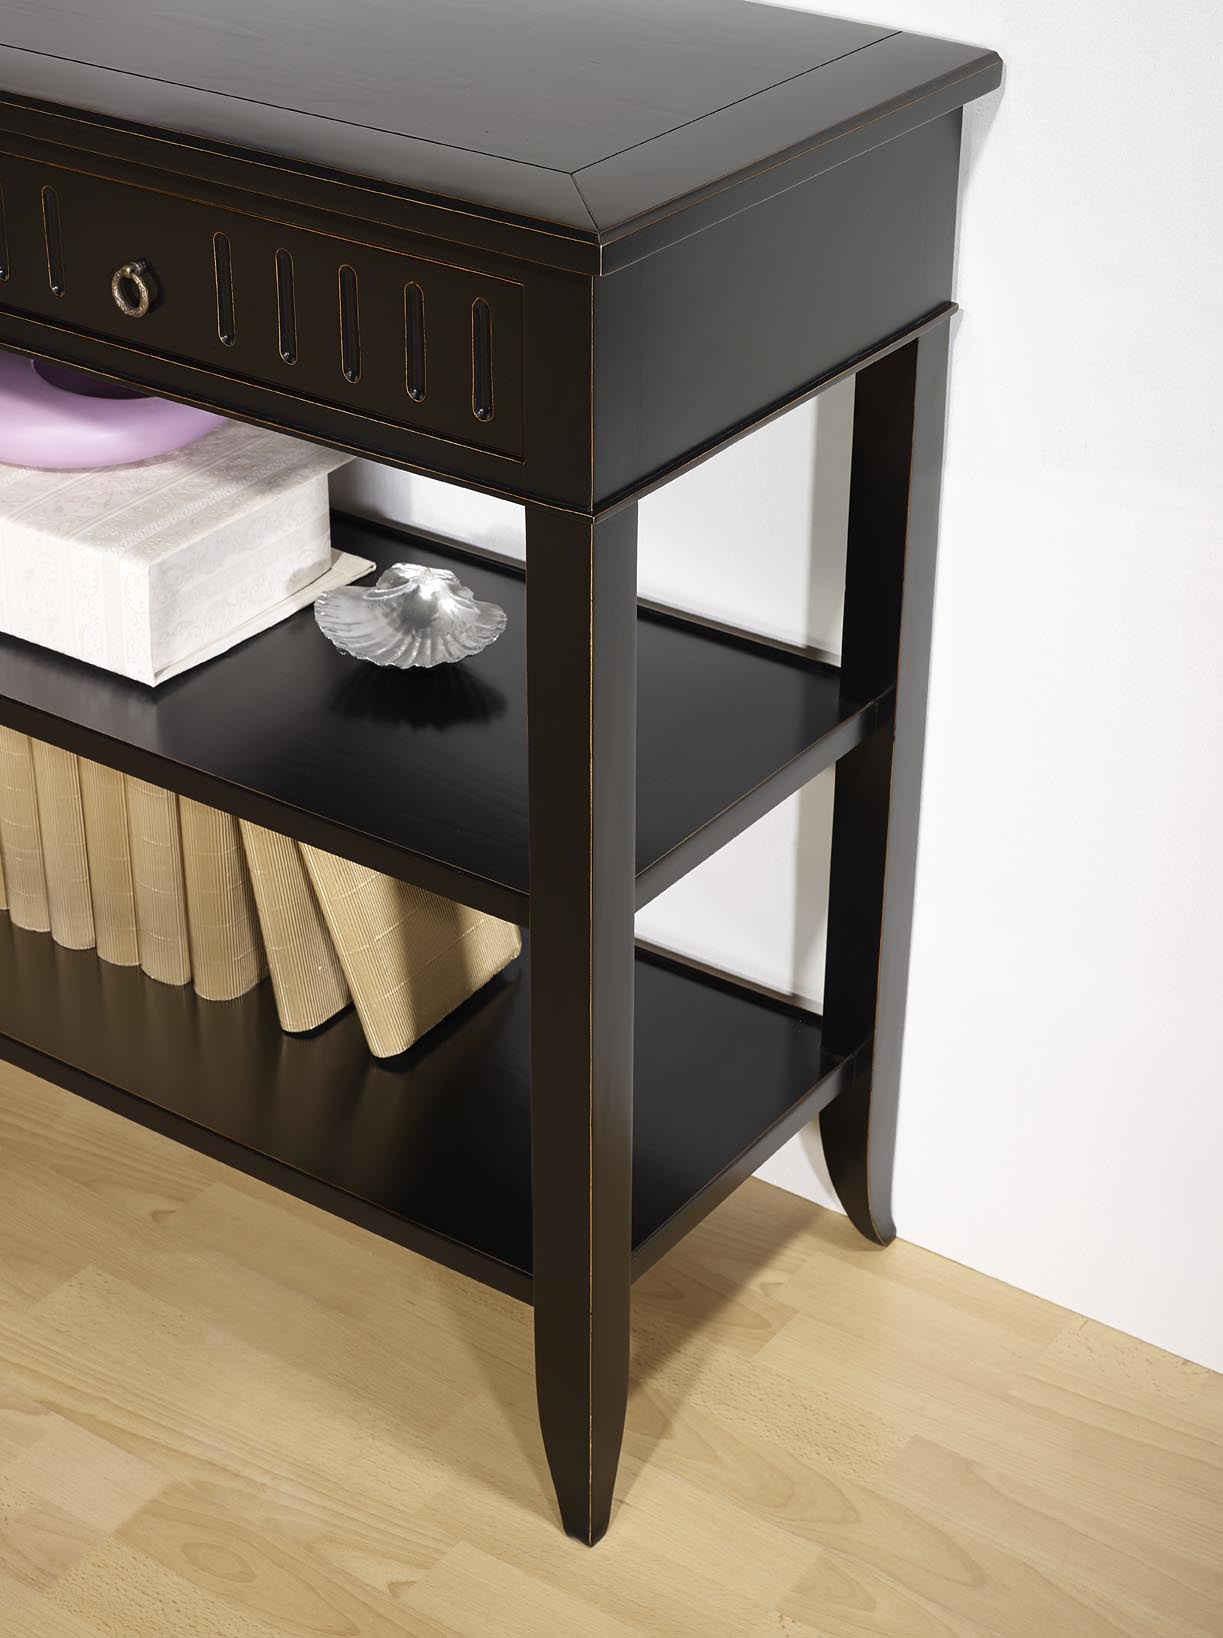 meilleur de console entr e ikea l 39 id e d 39 un porte manteau. Black Bedroom Furniture Sets. Home Design Ideas